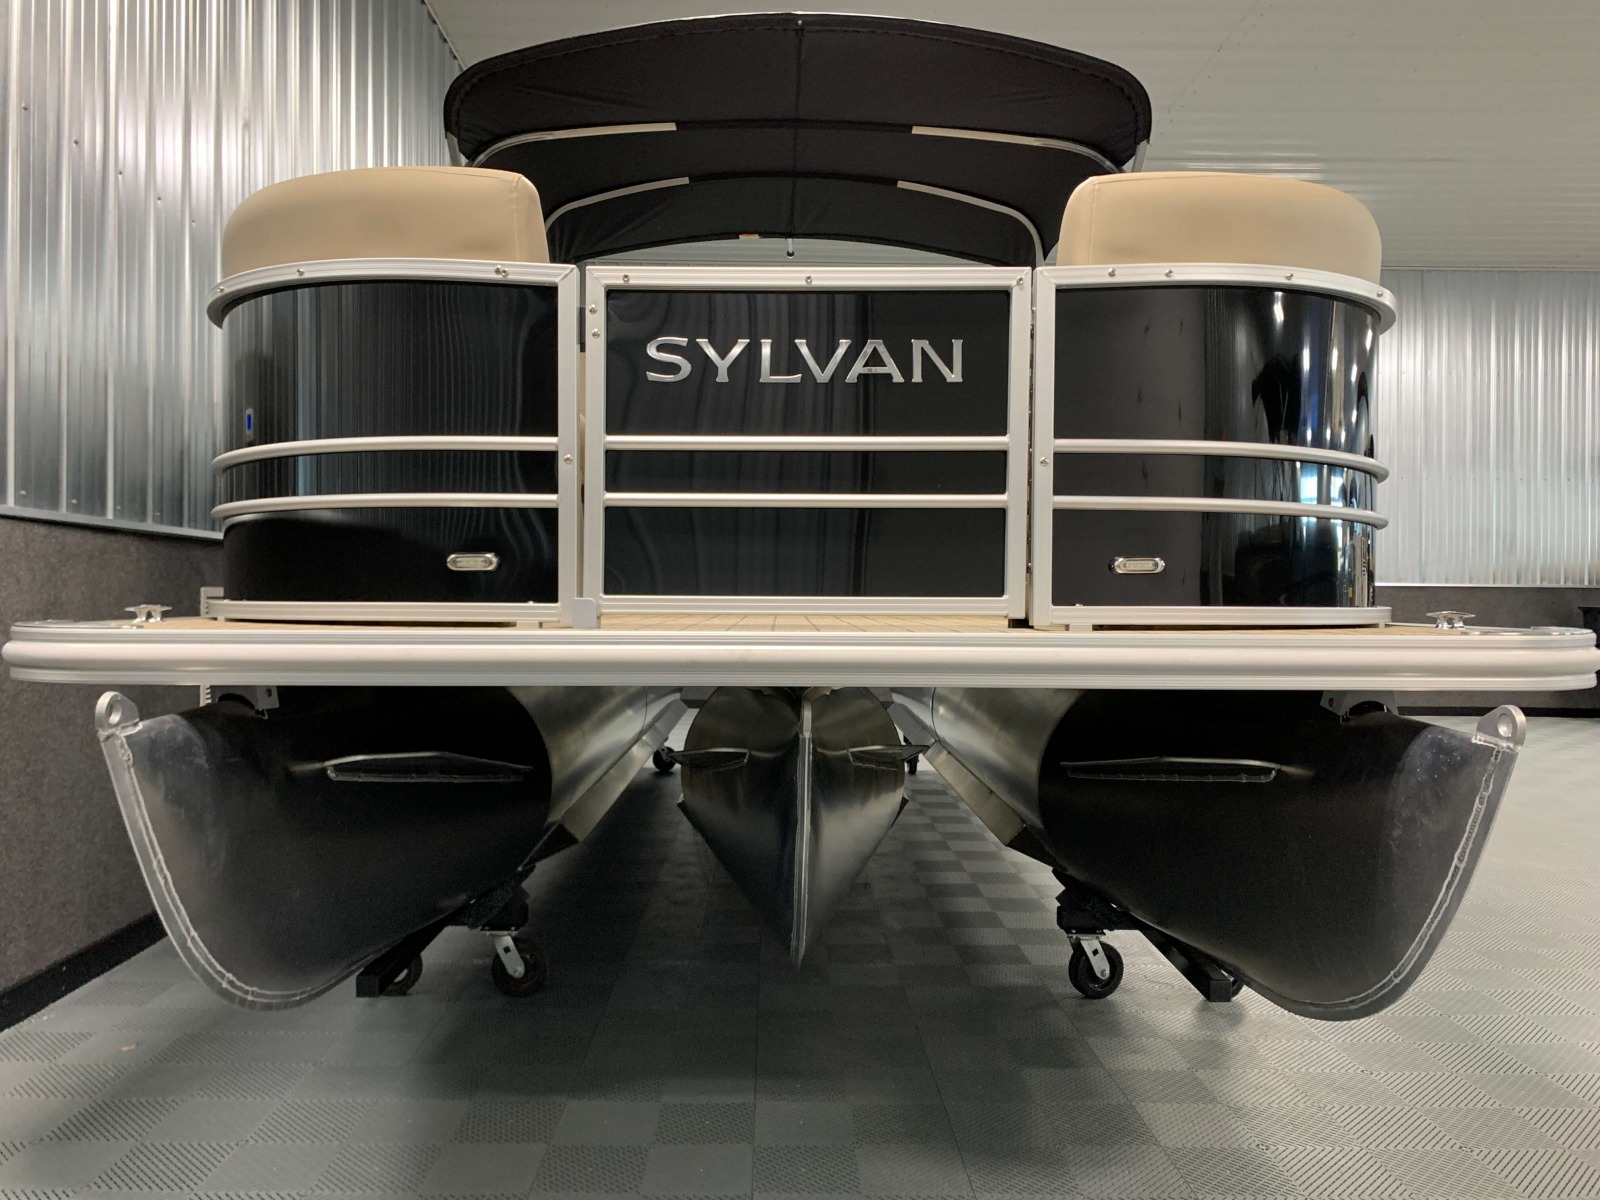 Tritoon Package of a 2020 Sylvan Mirage 8520 Cruise Tritoon